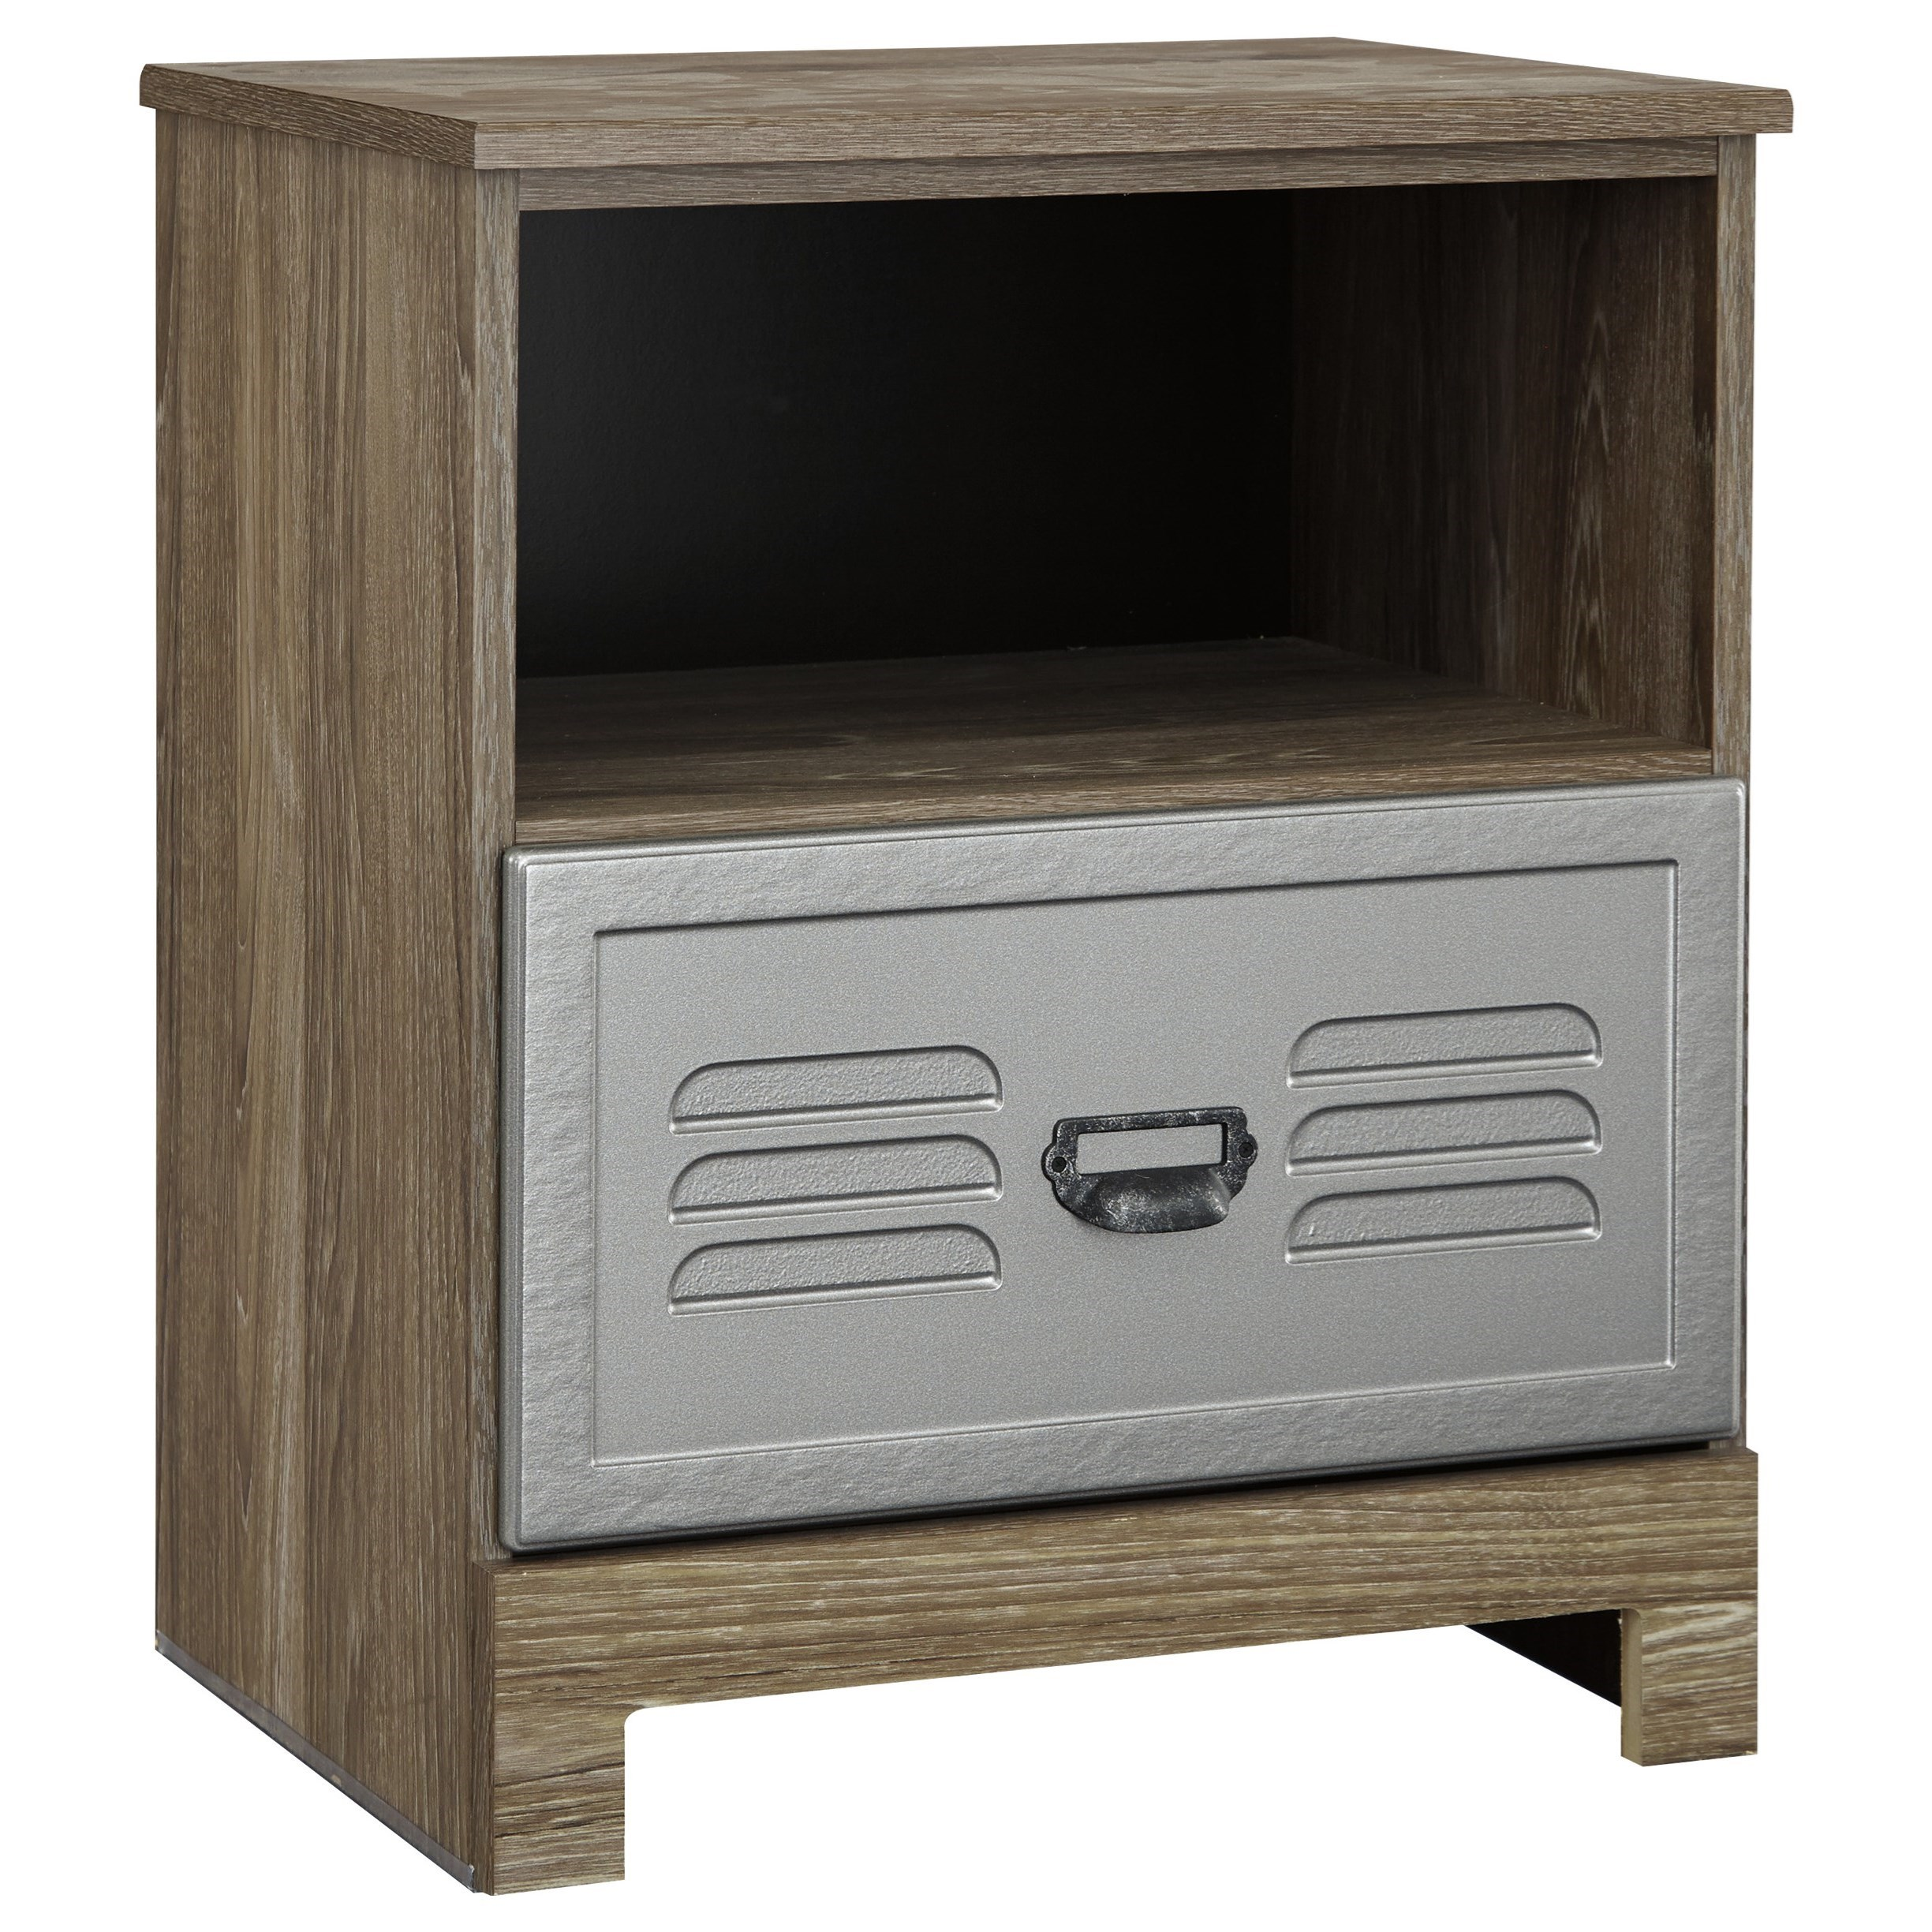 Signature Design by Ashley McKeeth One Drawer Night Stand - Item Number: B099-91